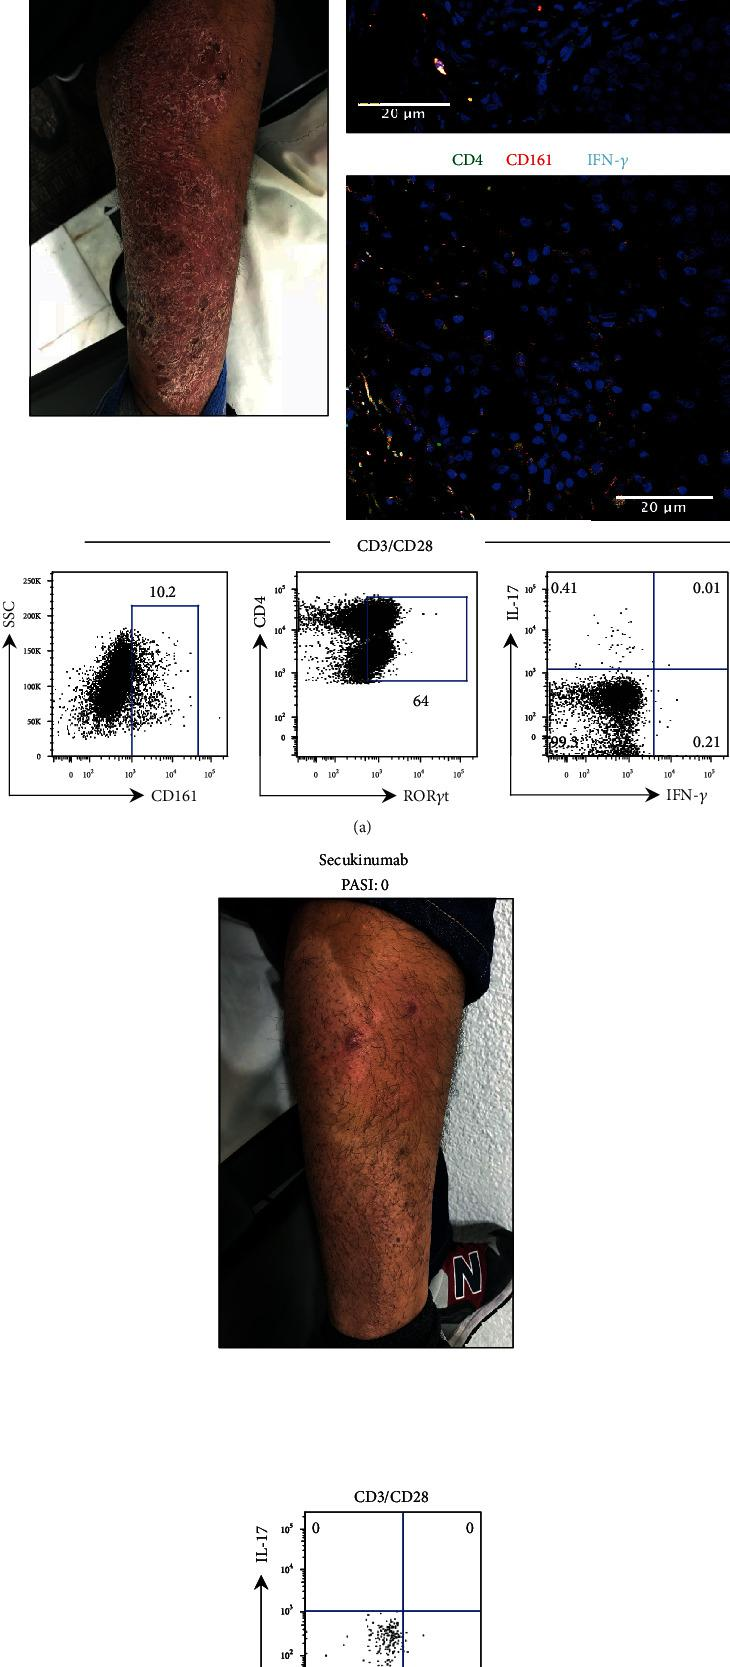 Evaluation of the Th17 cell phenotype is helpful to select the biological treatment of a psoriasis patient. (a) Photography of psoriasis patient P91 (pretreatment, PASI 6.3) shows the most representative skin lesion. LS immunofluorescence staining for Th17 cells using anti-CD4 (green), anti-IFN- γ (cyan), anti-IL-17 or anti-CD161 (red), and nuclei (blue). PBMC were stimulated with anti-CD3/CD28. CD161 and ROR γ t were evaluated in CD4 T cells by flow cytometry as well as the production of IL-17 and IFN- γ in Th17 cells (bottom panels). (b) Photography of a psoriasis patient after secukinumab treatment (PASI 0) taken in the same anatomical site (a). Flow cytometry plot of IL-17 and IFN- γ expression in Th17 cells. Scale bar = 20 μ m.